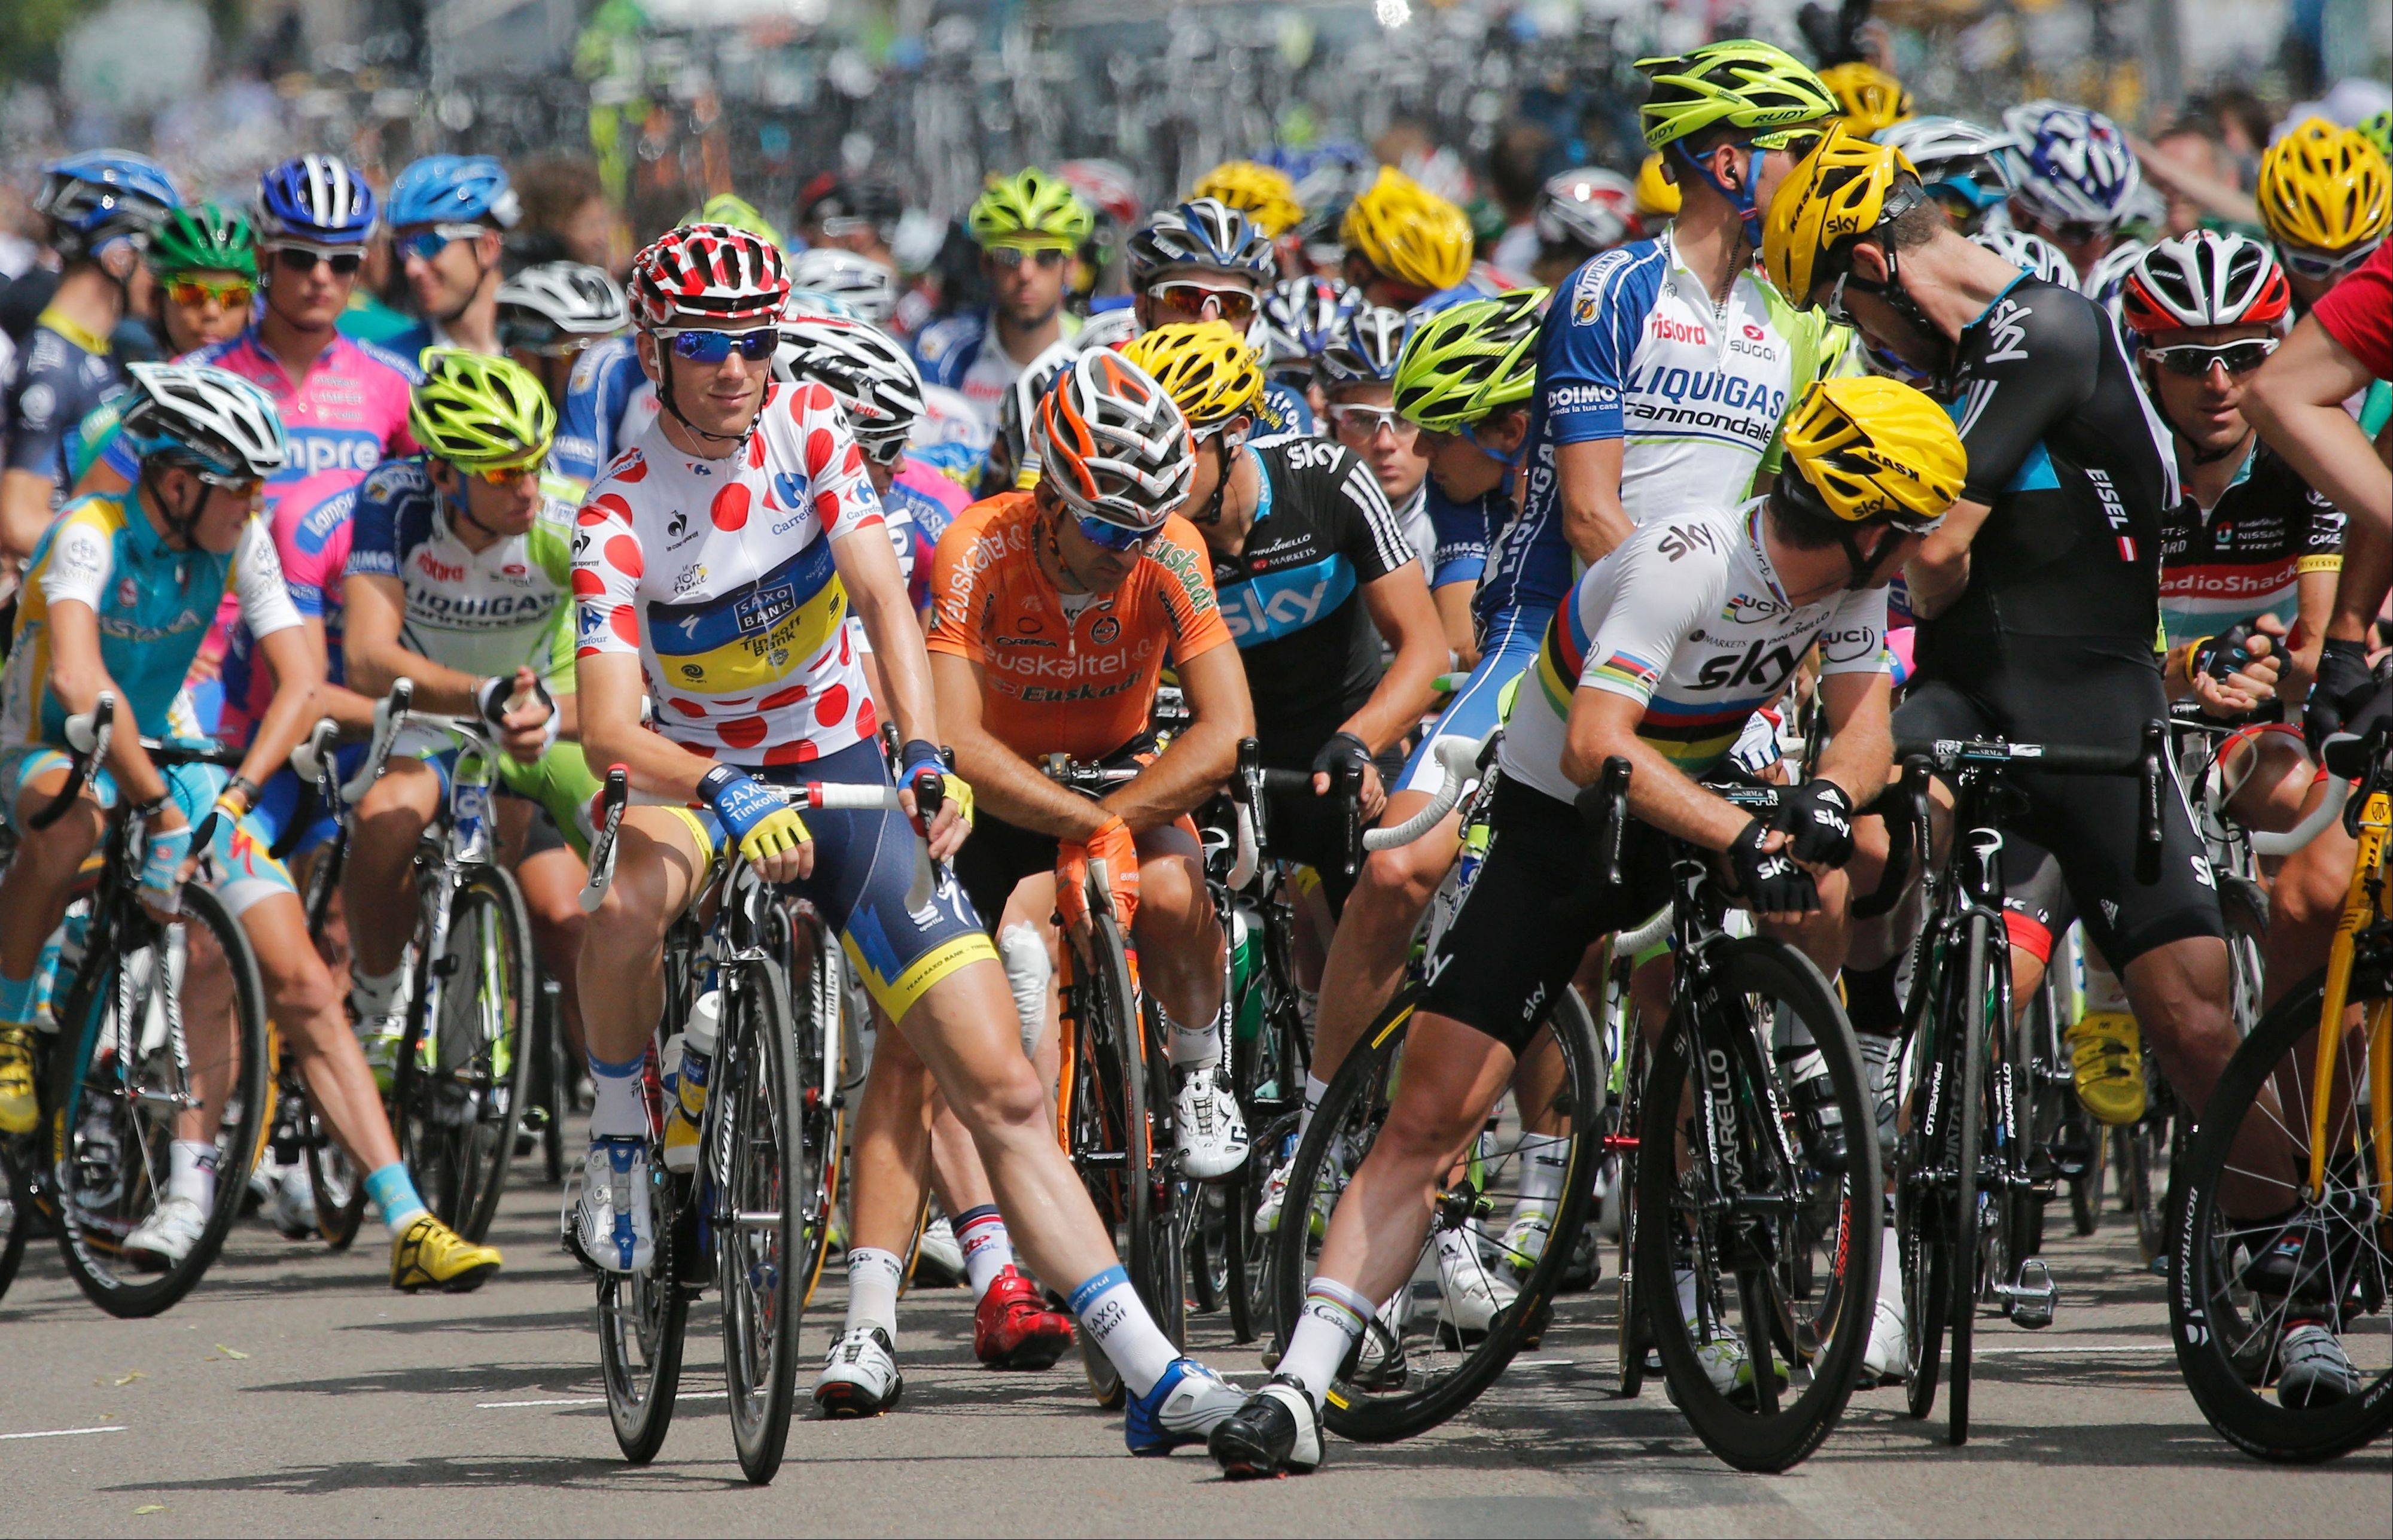 Tour de France 4th stage gets under way